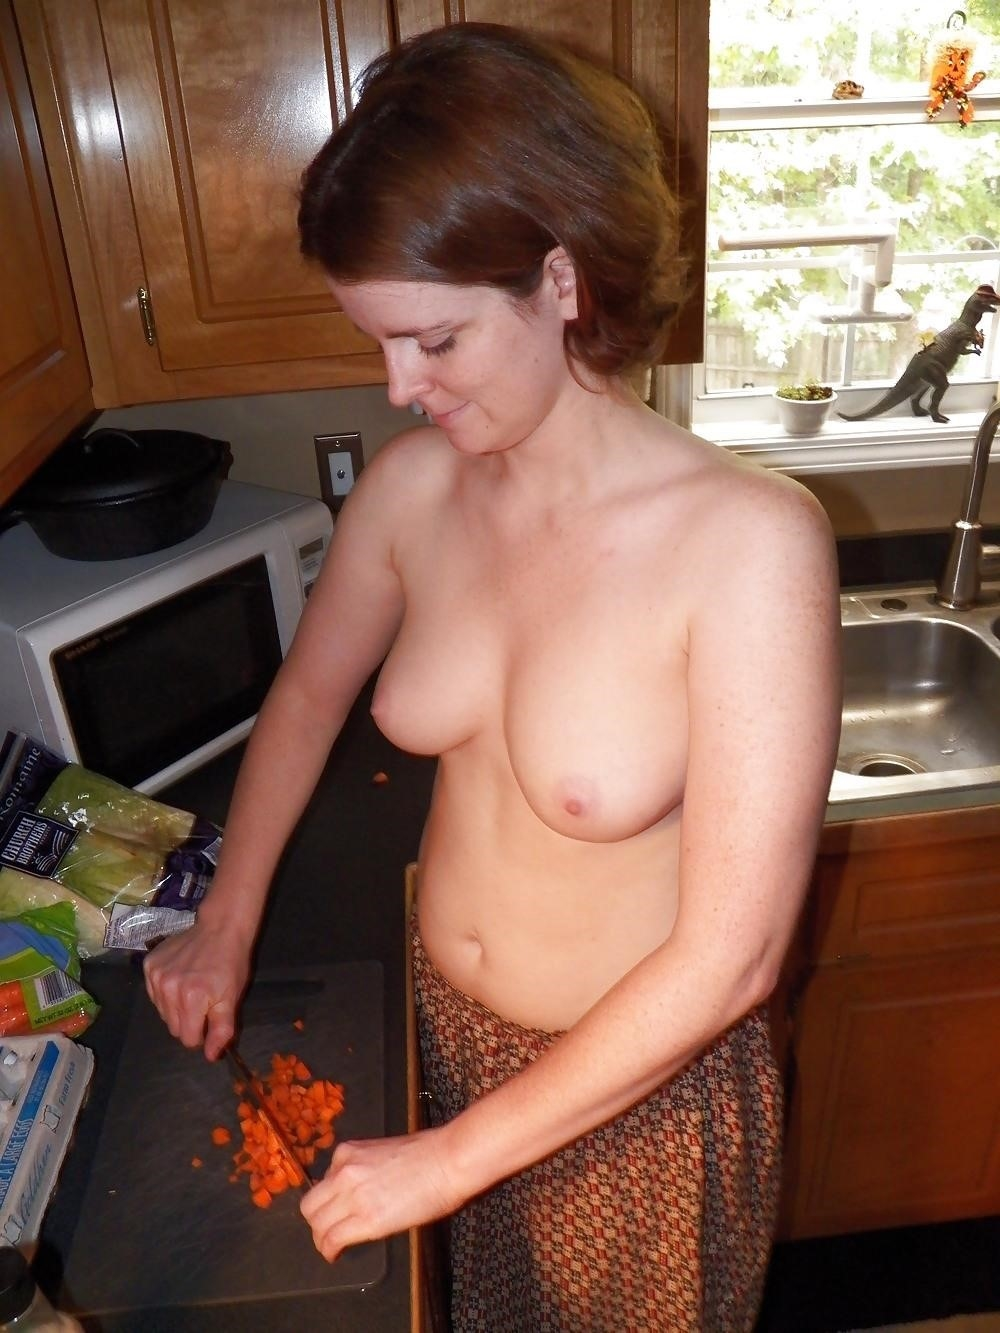 Wife cooking nude-4732